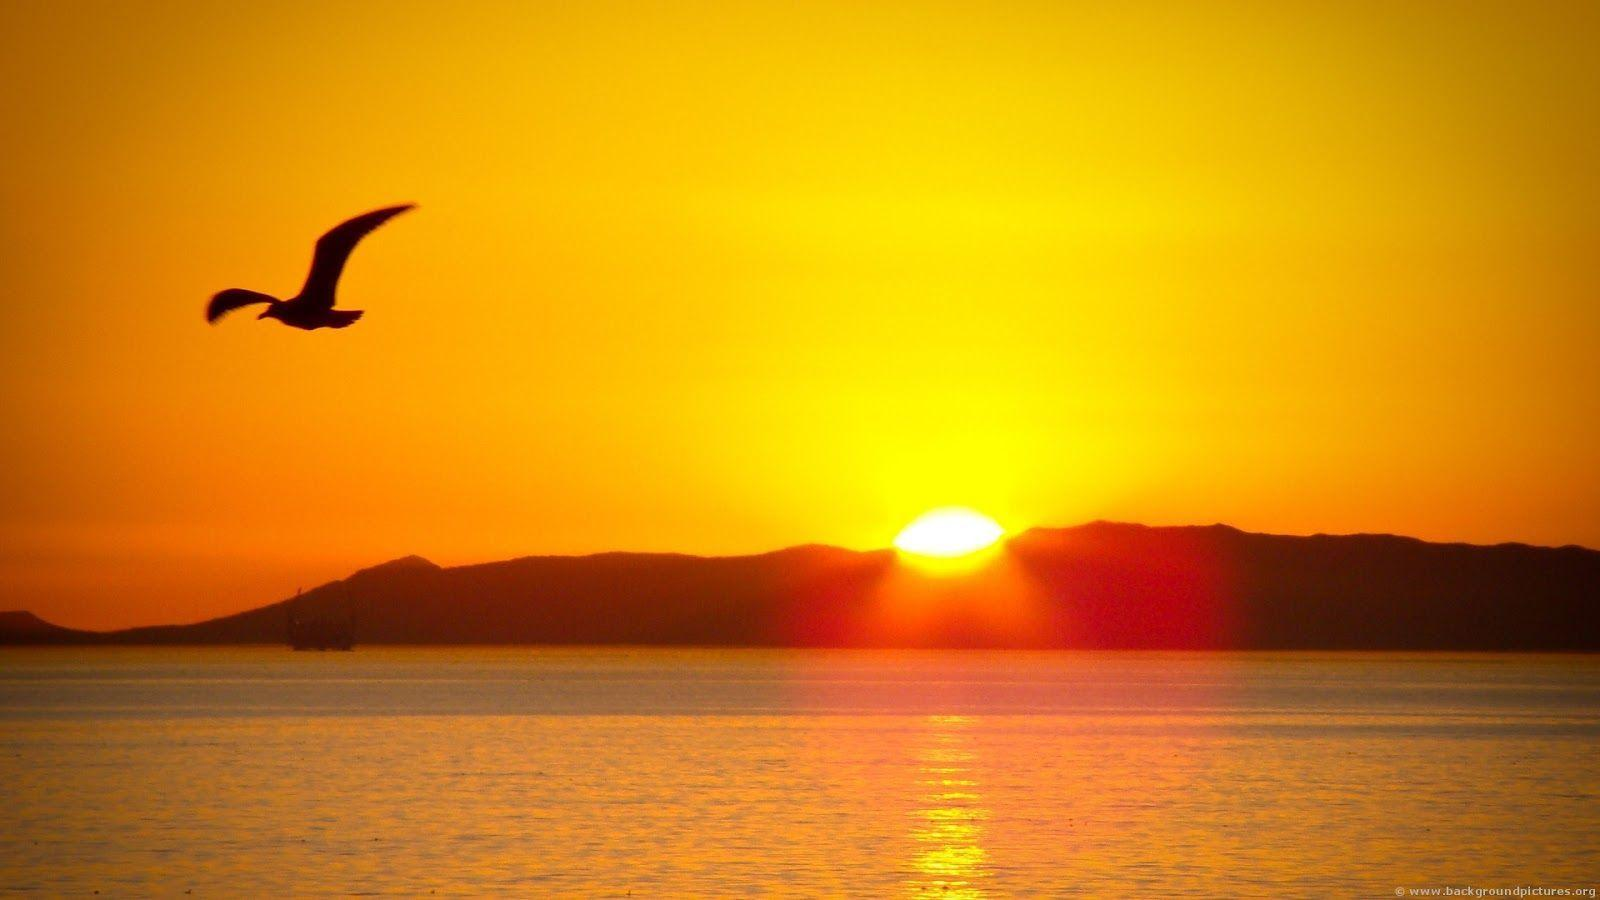 A Place For Free HD Wallpapers | Desktop Wallpapers: Sun Rise ...